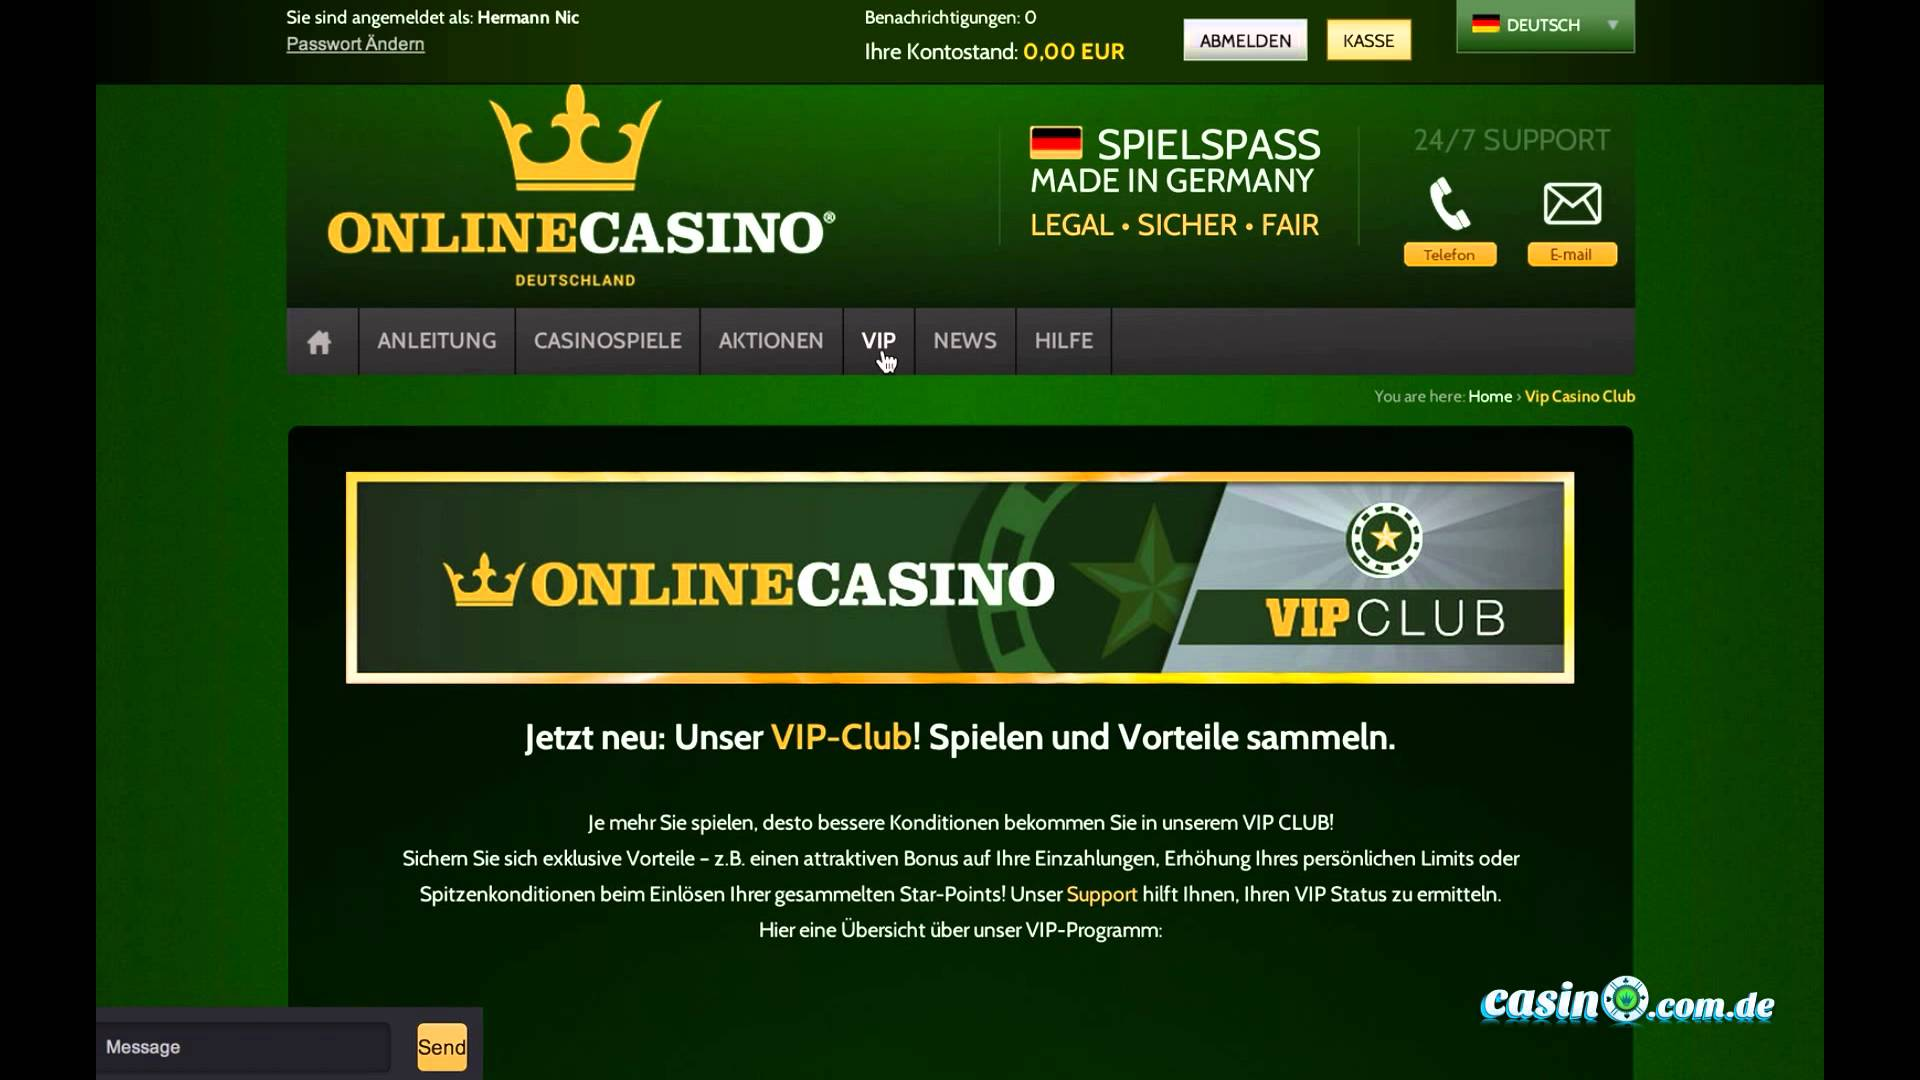 online casino deutschland legal start games casino